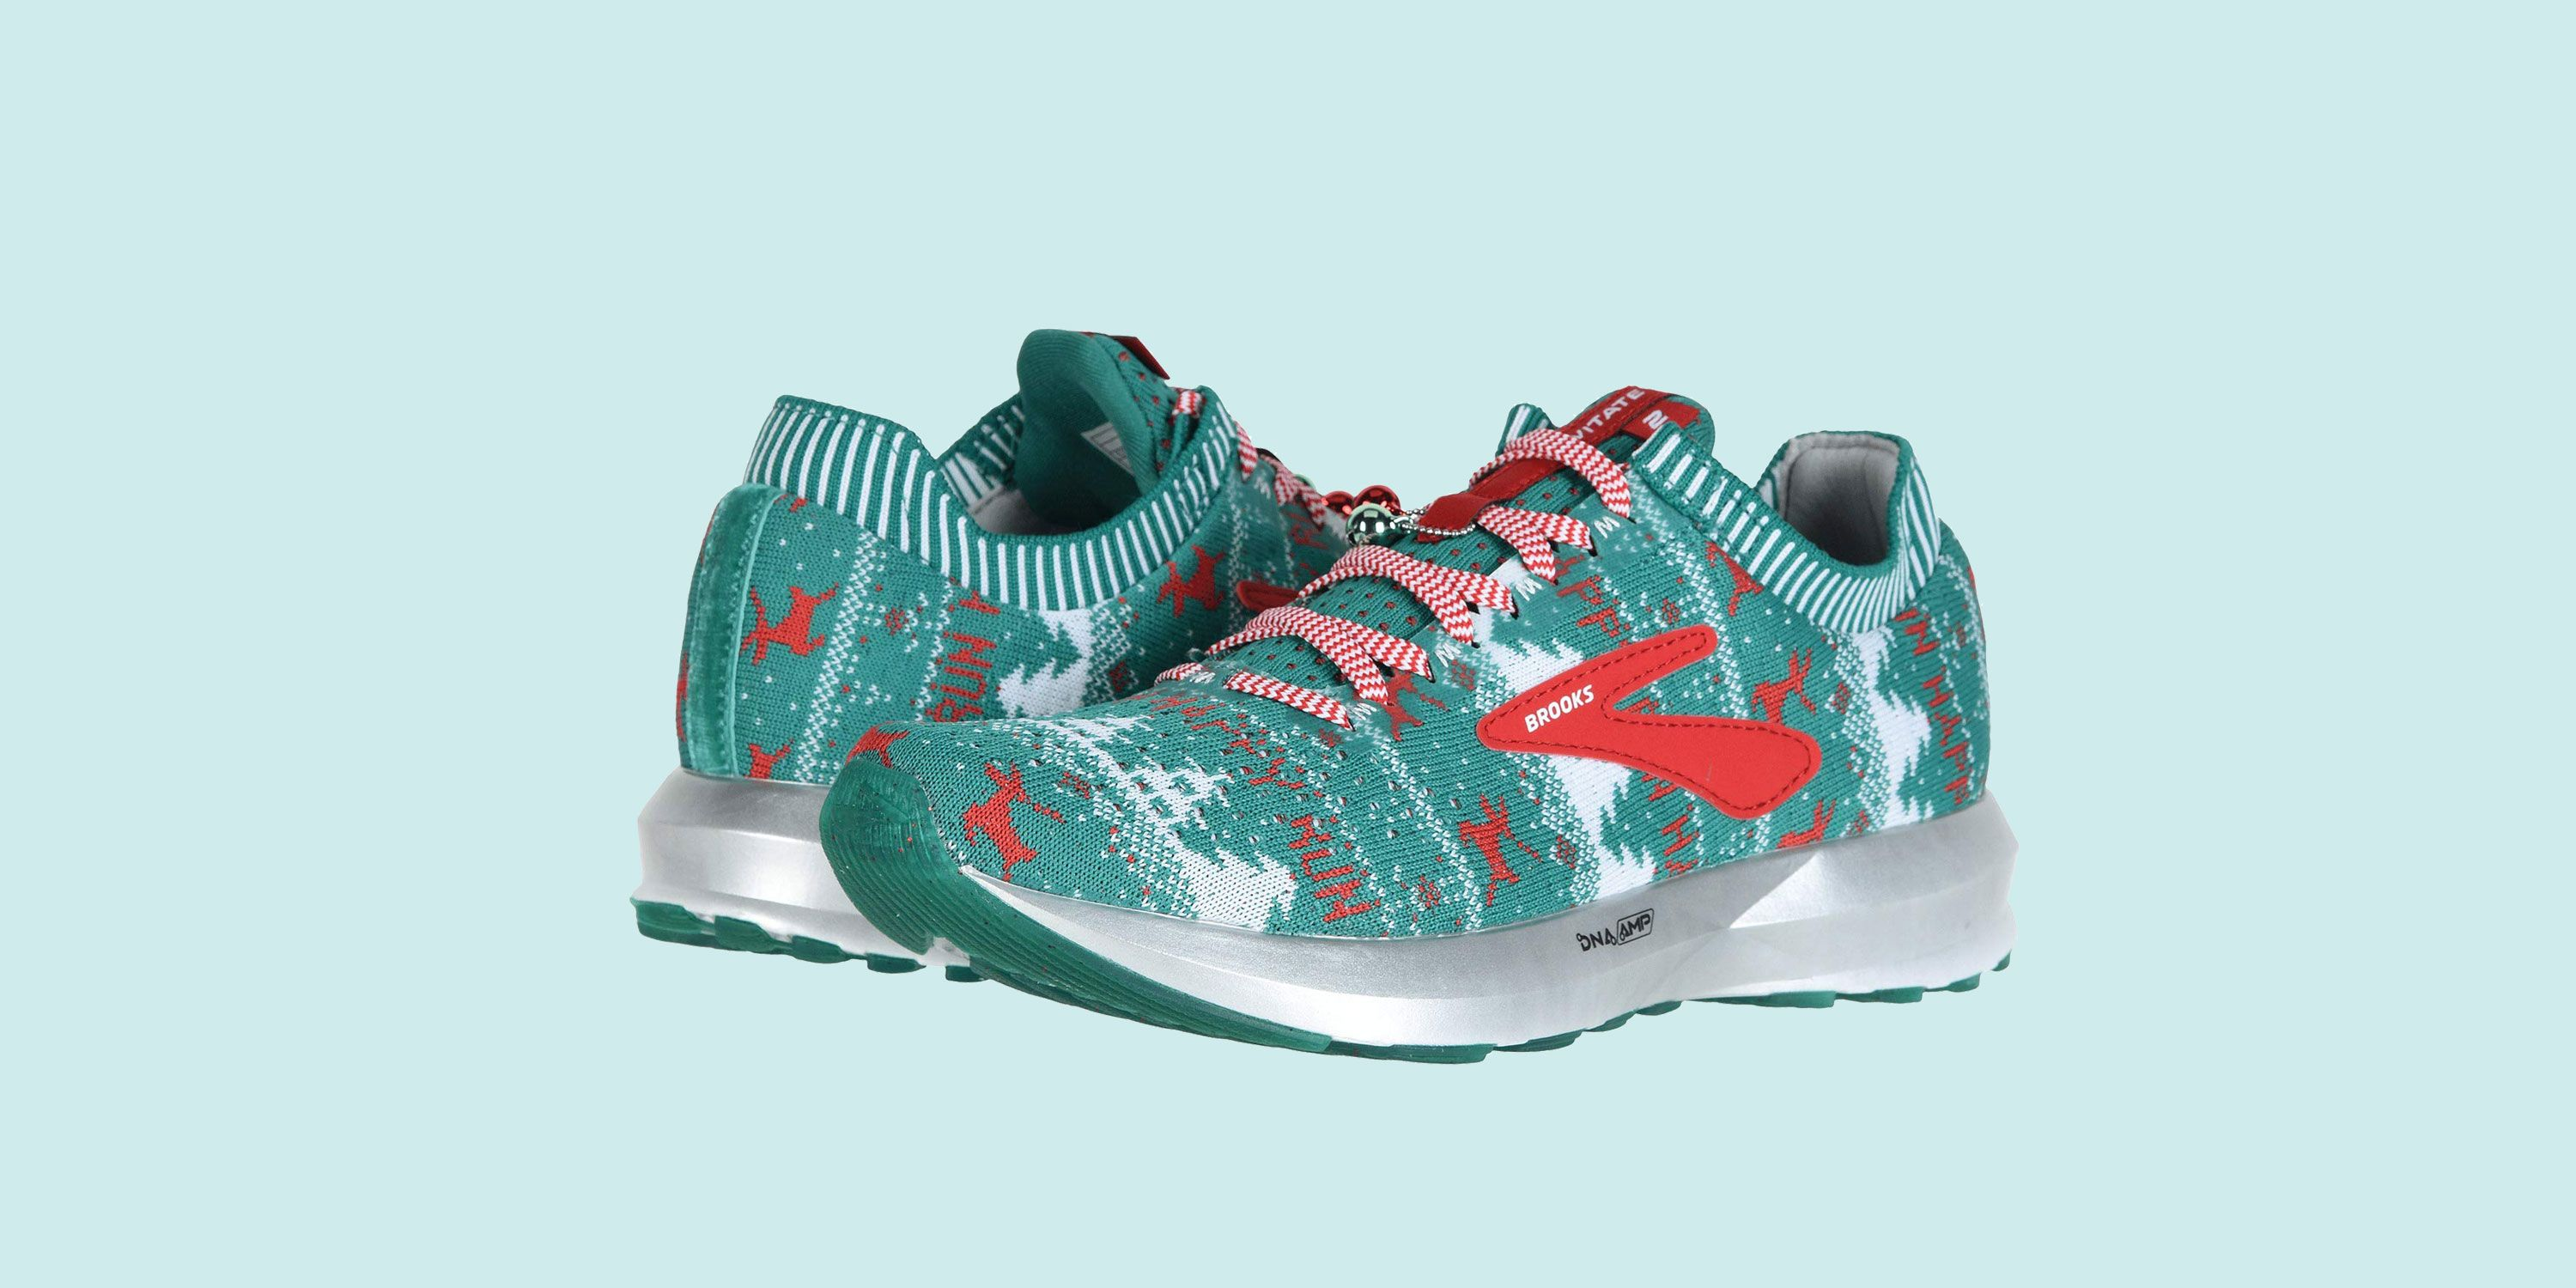 Brooks Christmas Shoes Are Like An Ugly Sweater For Your Feet